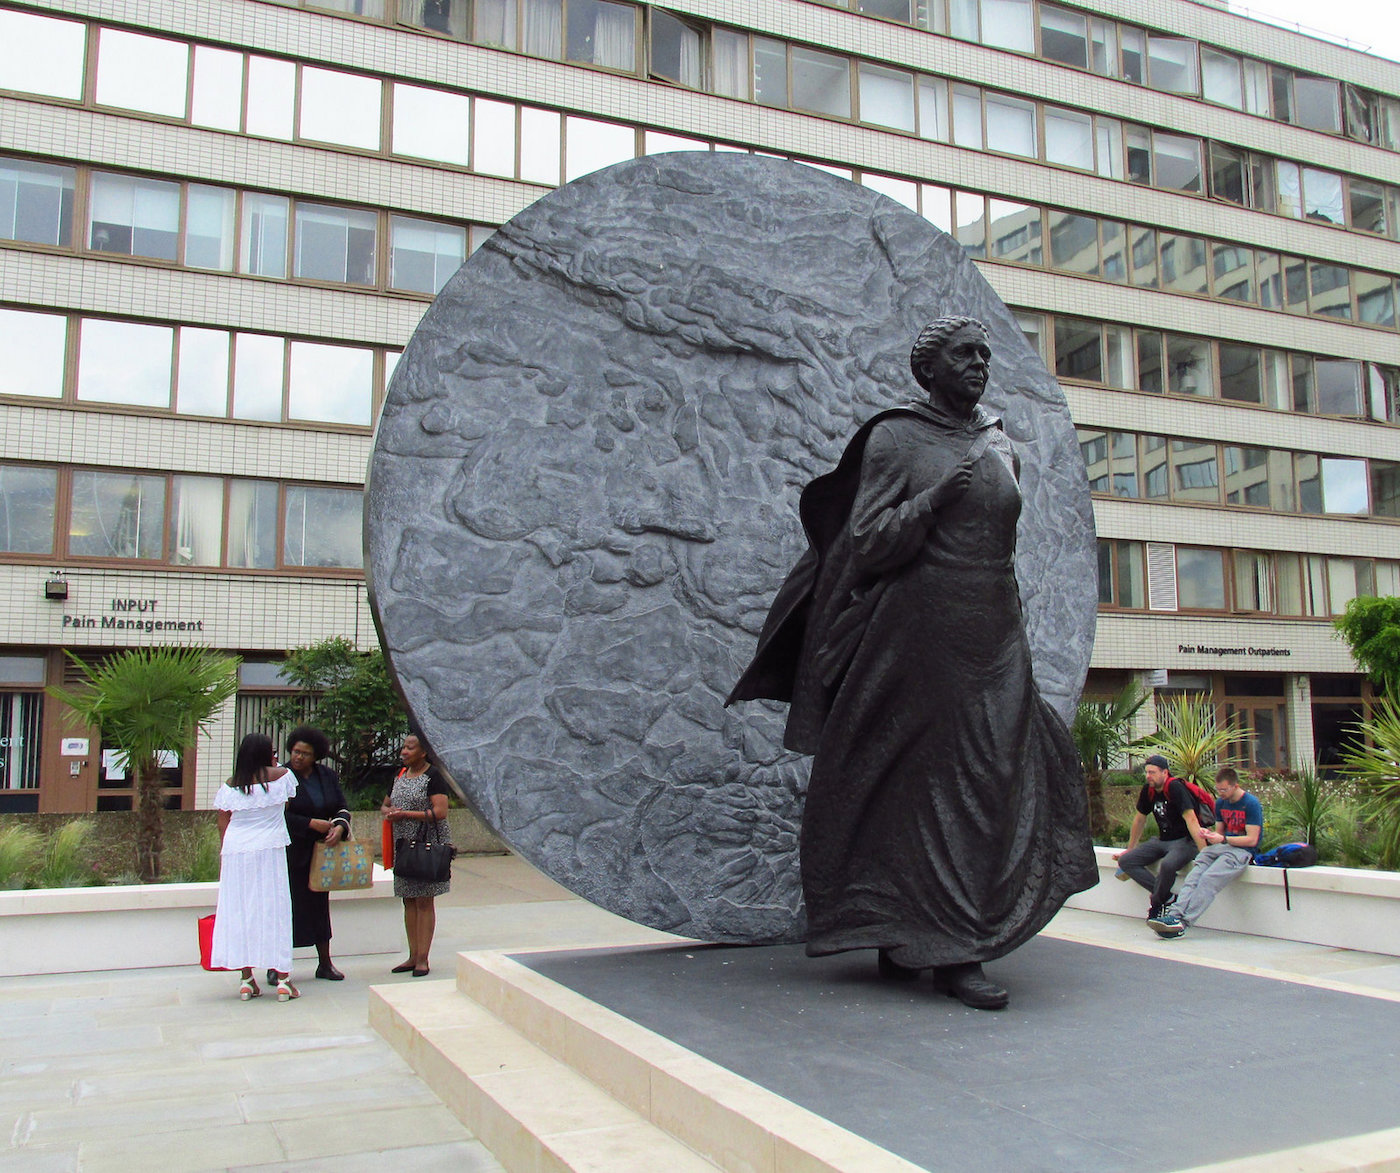 The statue of Mary Seacole unveiled in London (photo by David Holt/Flickr)